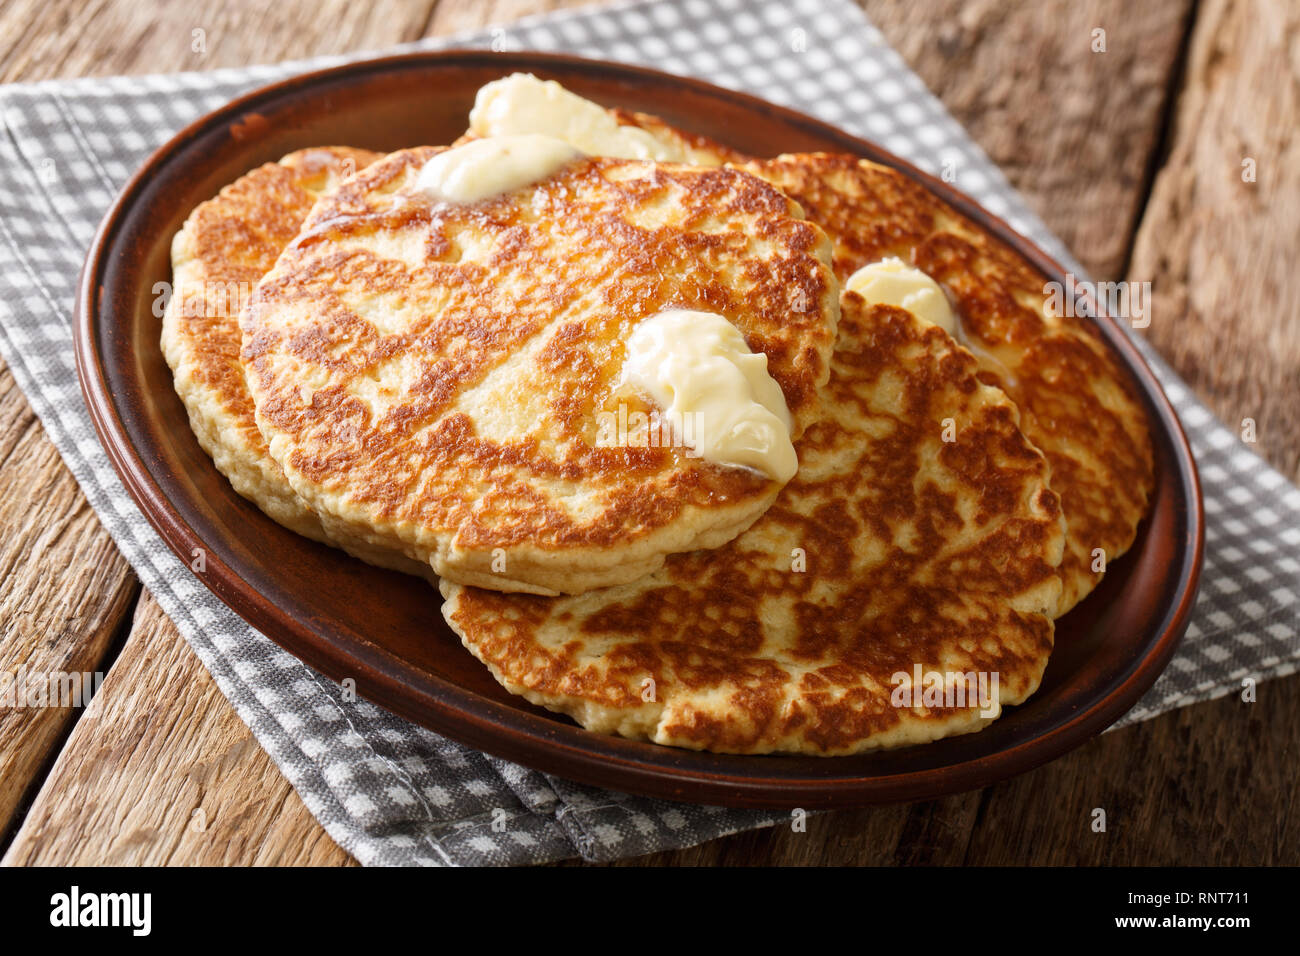 Homemade Gorditas de Azucar Sweet Griddle Cakes with butter close-up on a plate on the table. horizontal - Stock Image